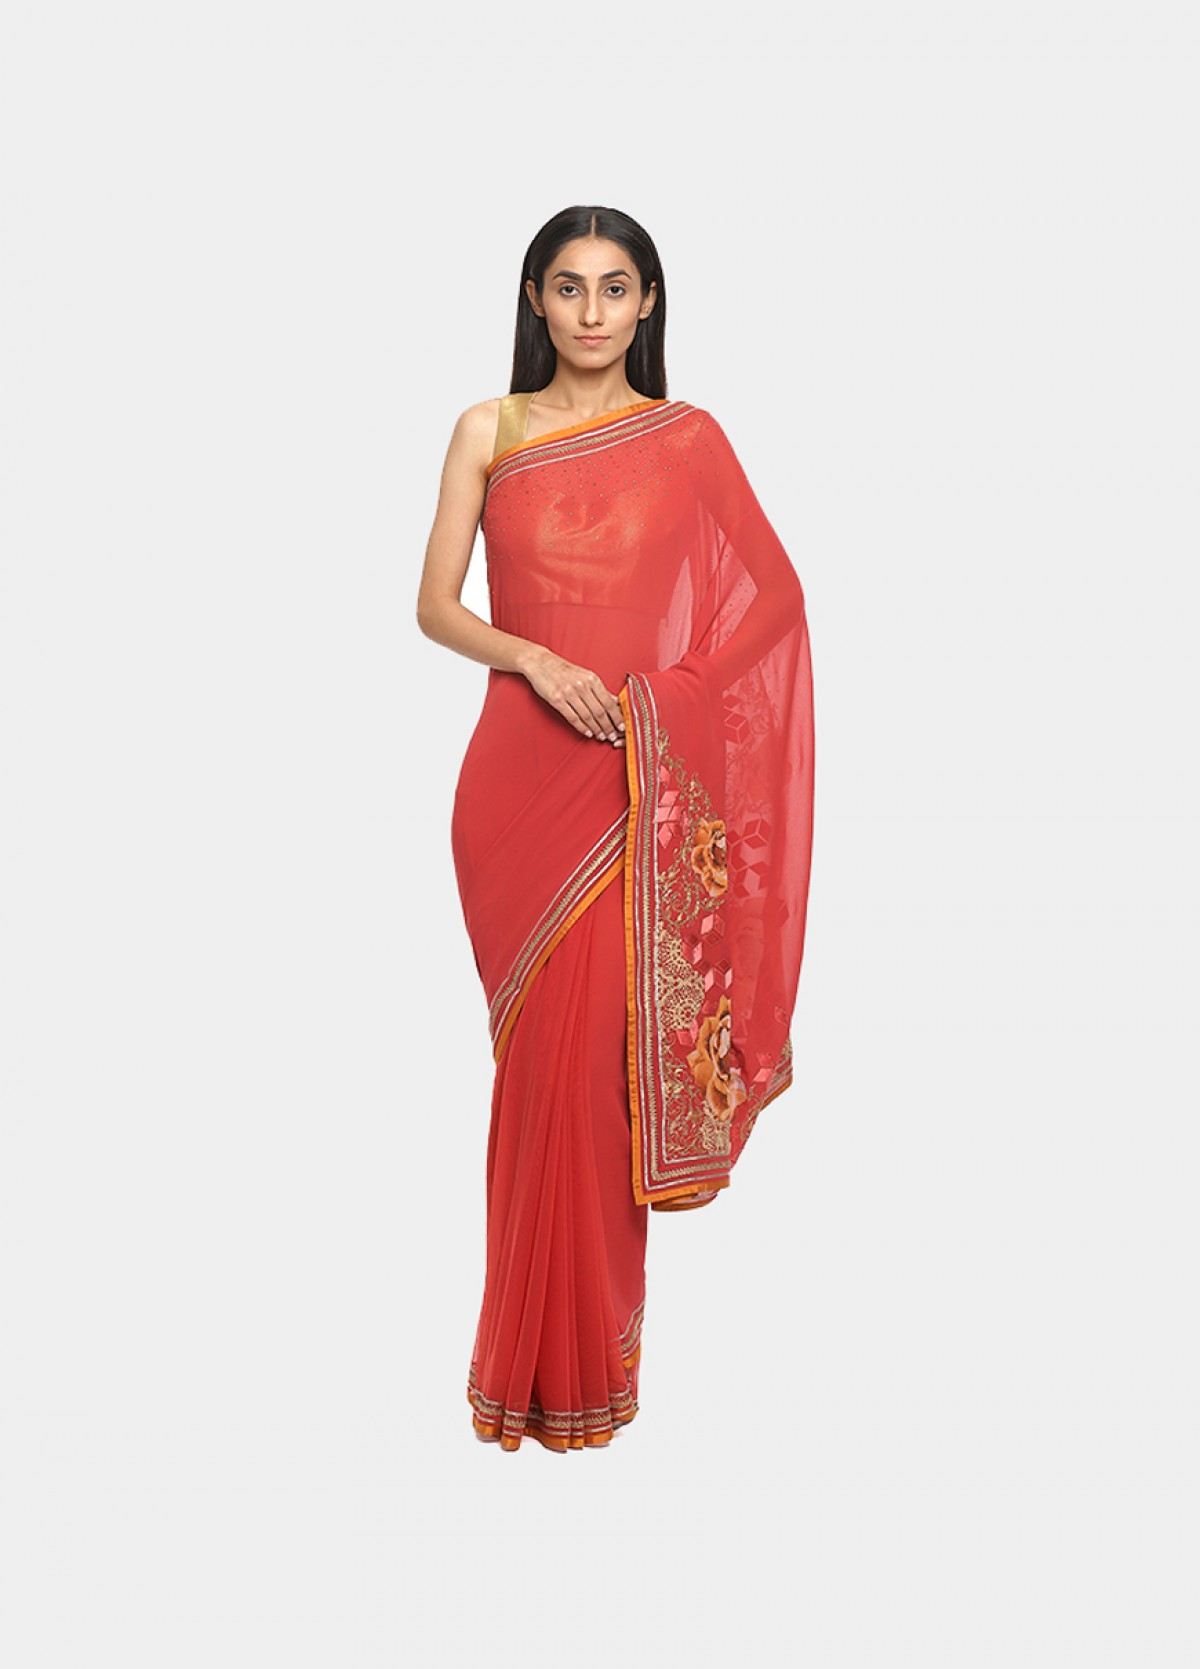 The Coral Net Embroidered Sari